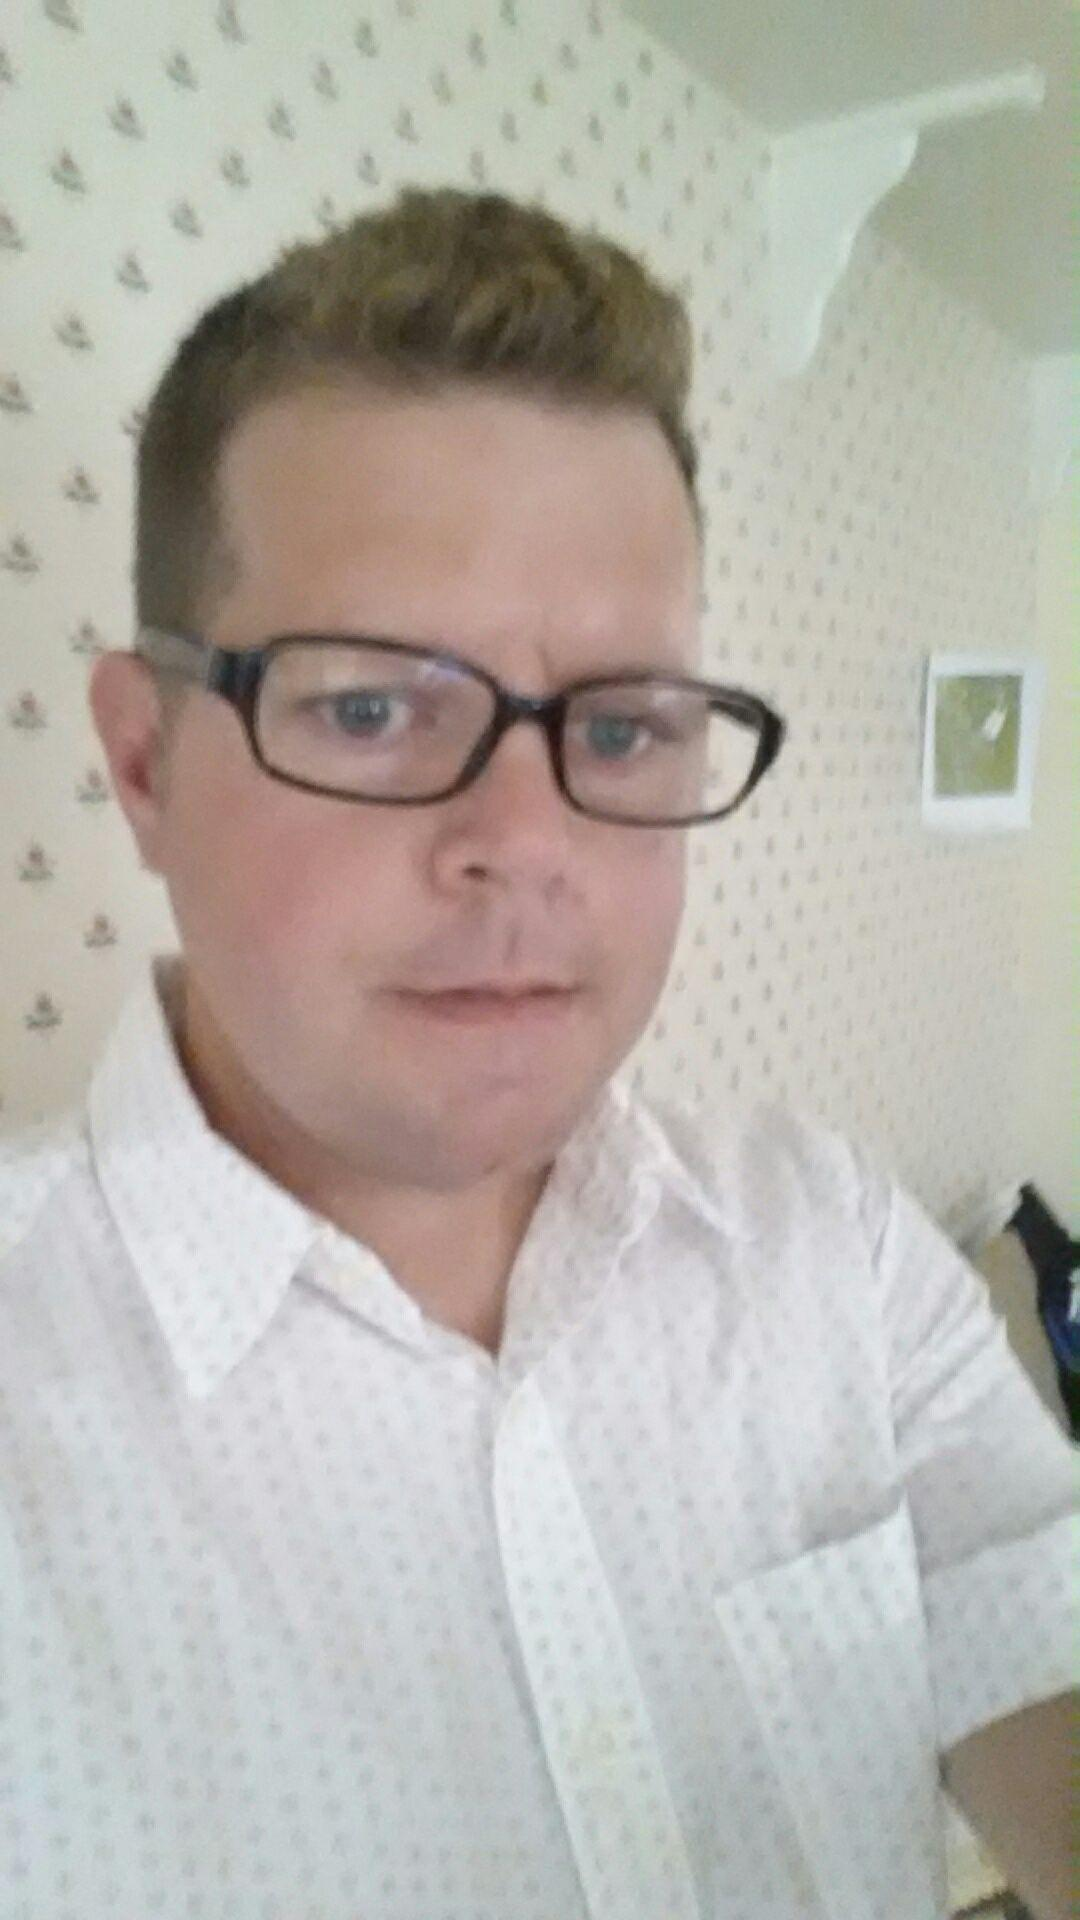 meet david singles Join the largest christian dating site sign up for free and connect with other  christian singles looking for love based on faith.